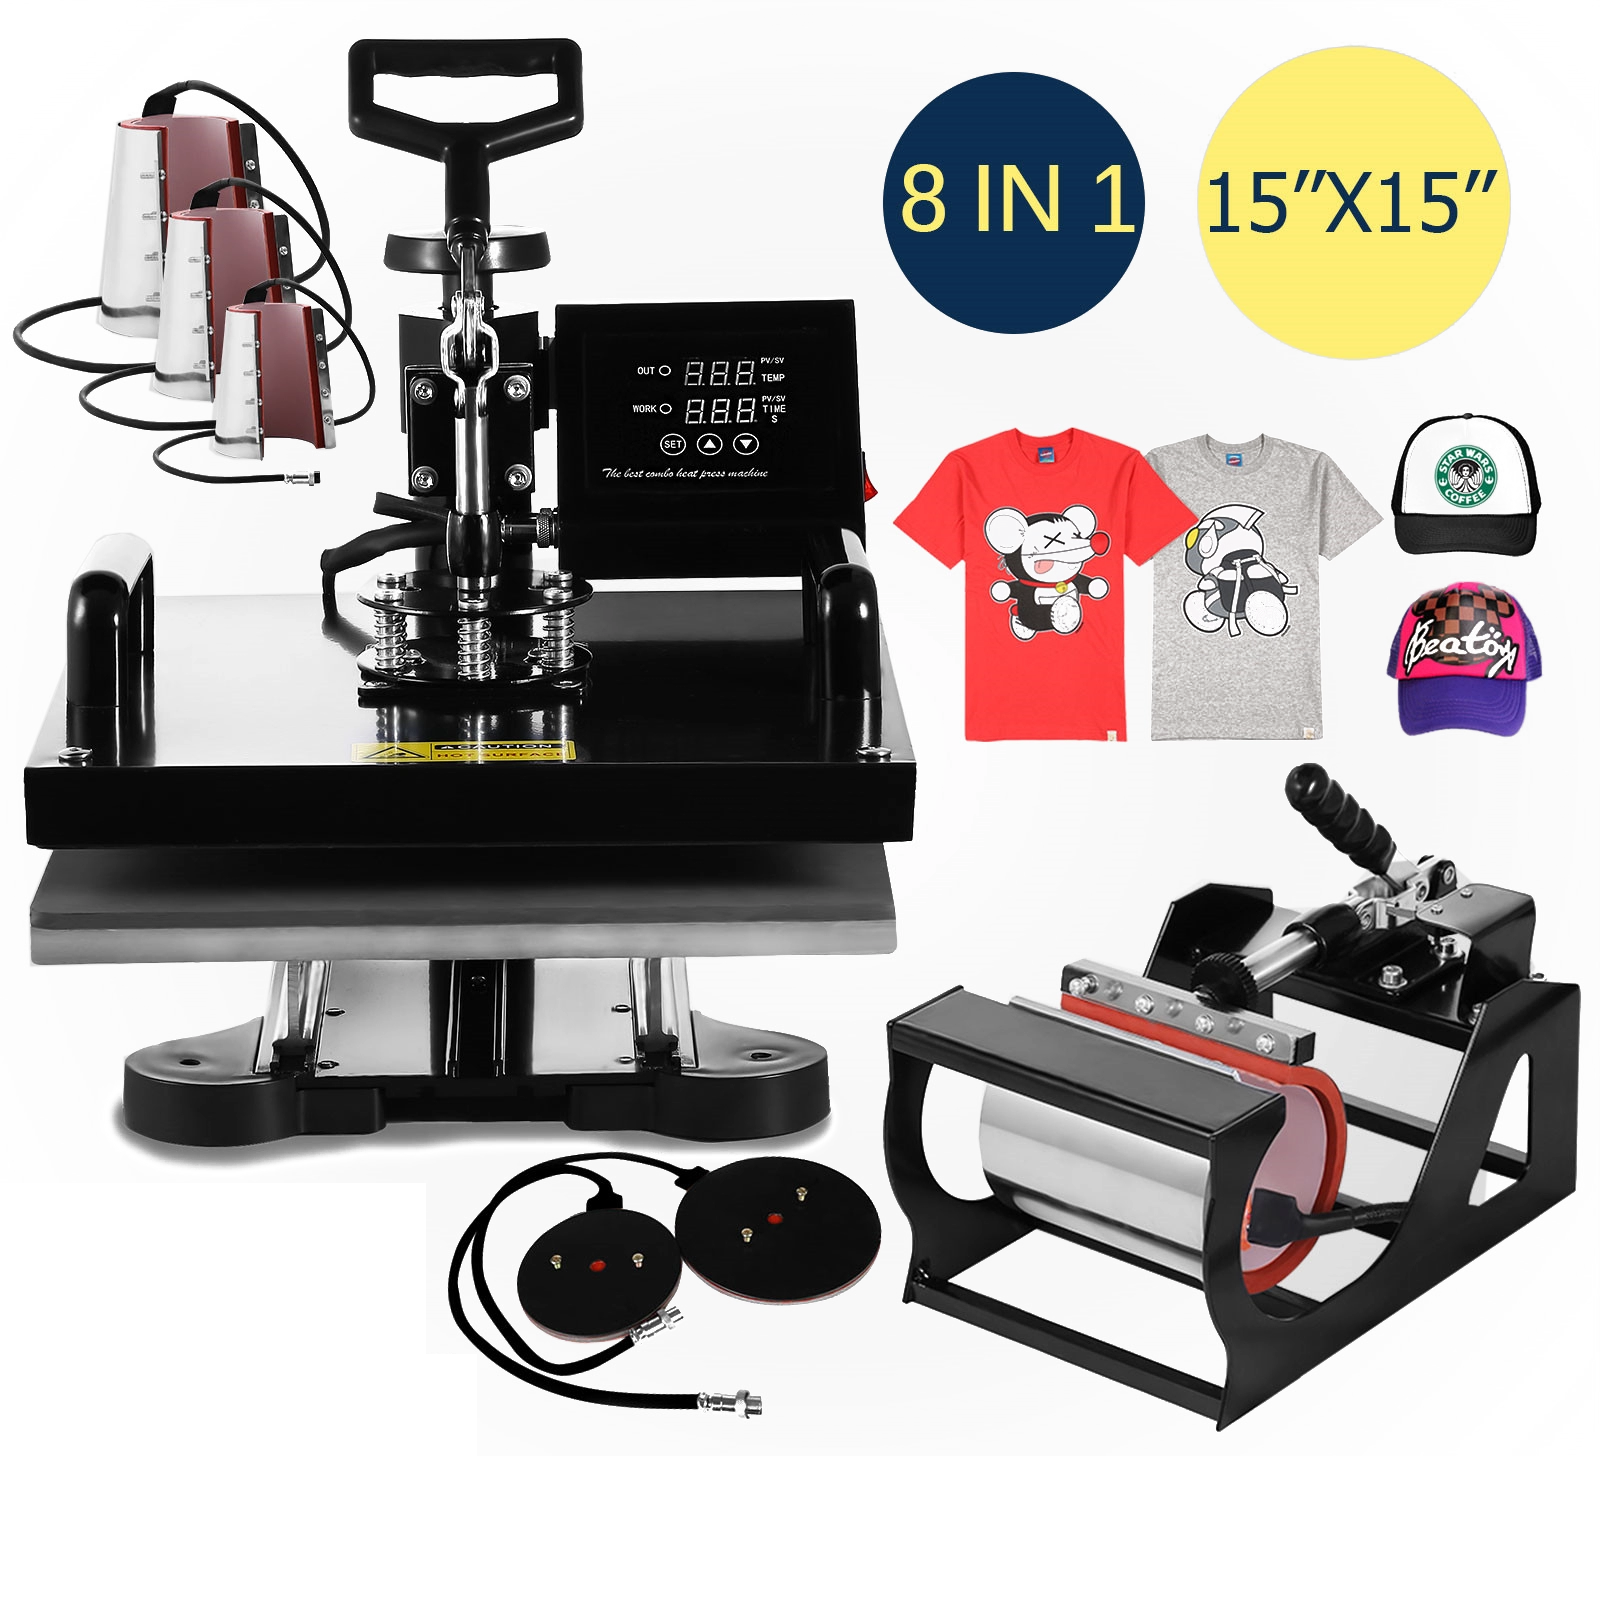 Transfer Presse Sublimation Multifunktionale 8 in 1 3d Hitze Presse Maschine für T-Shirt Becher Hut kappe